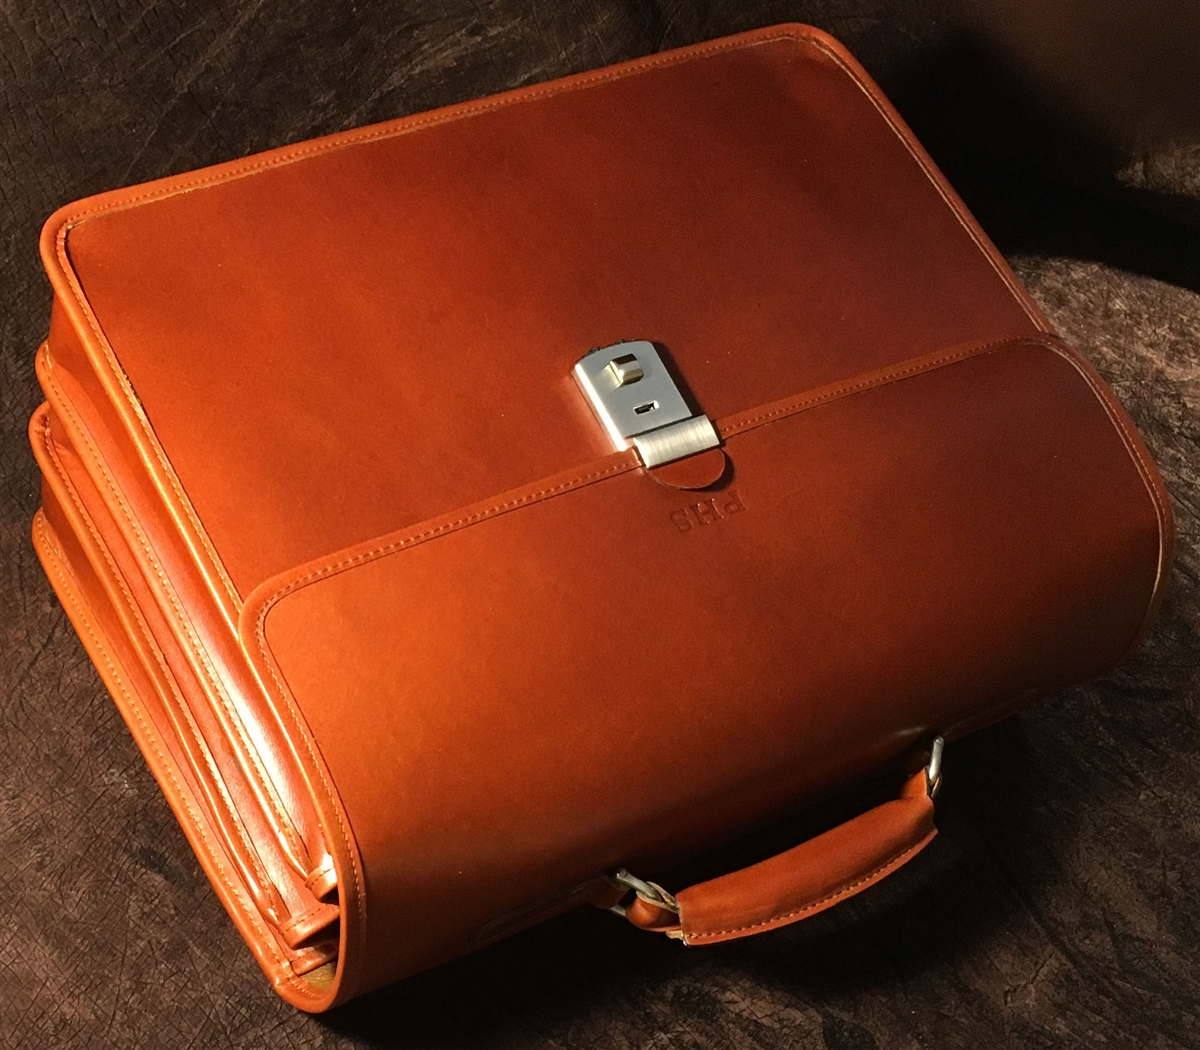 70a2b7f809 Advocate 3 Compartment leather briefcase. Made in USA | Customhide.com